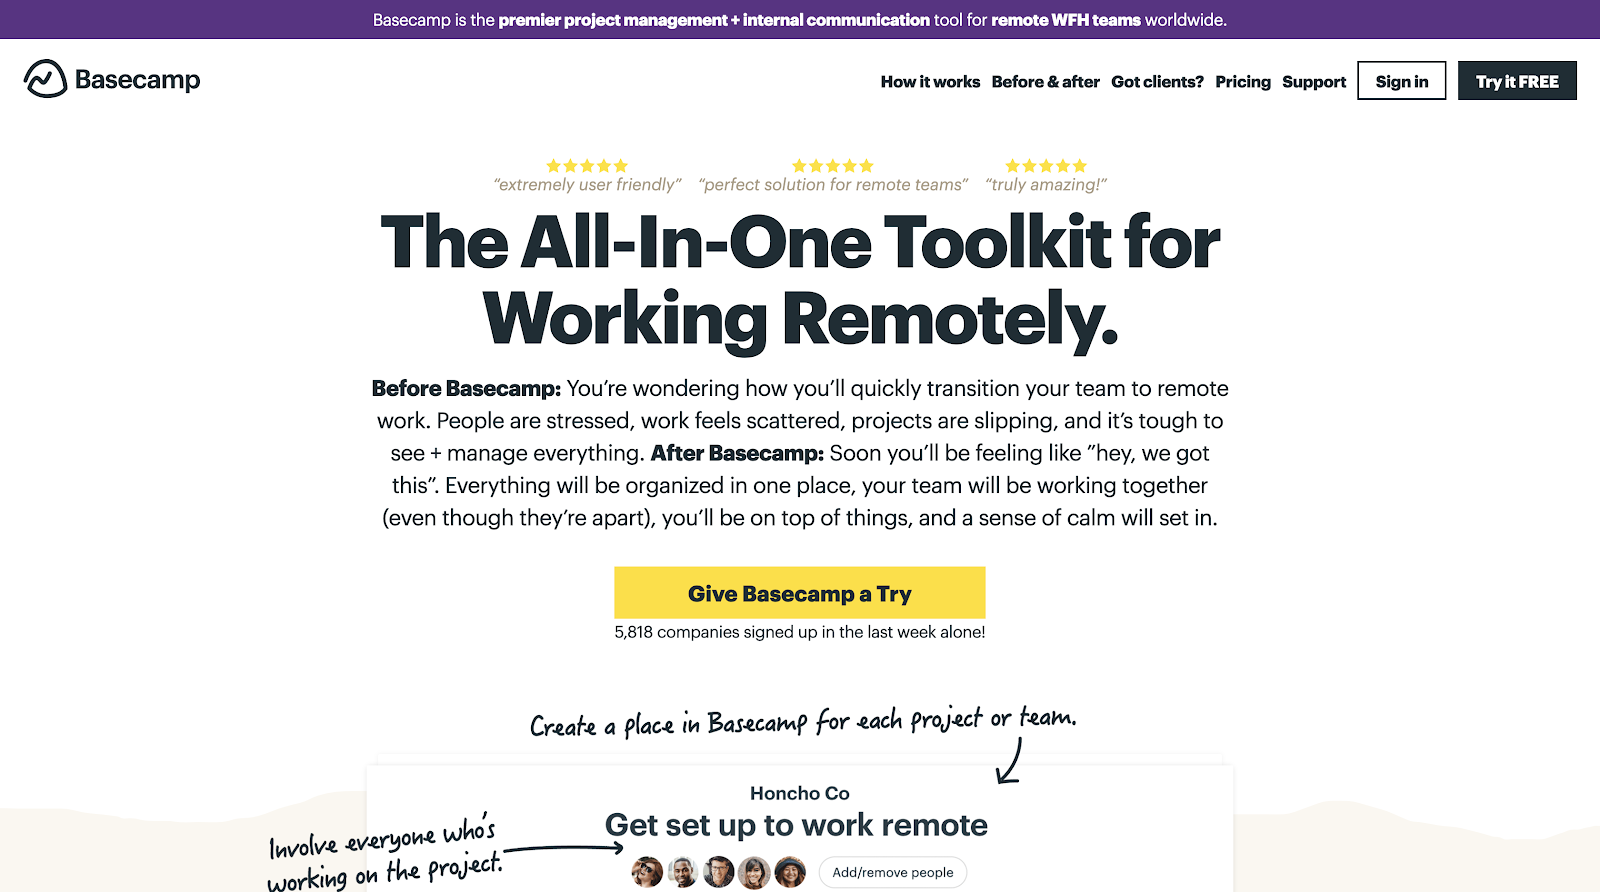 Basecamp - The All-In-One Toolkit for Working Remotely